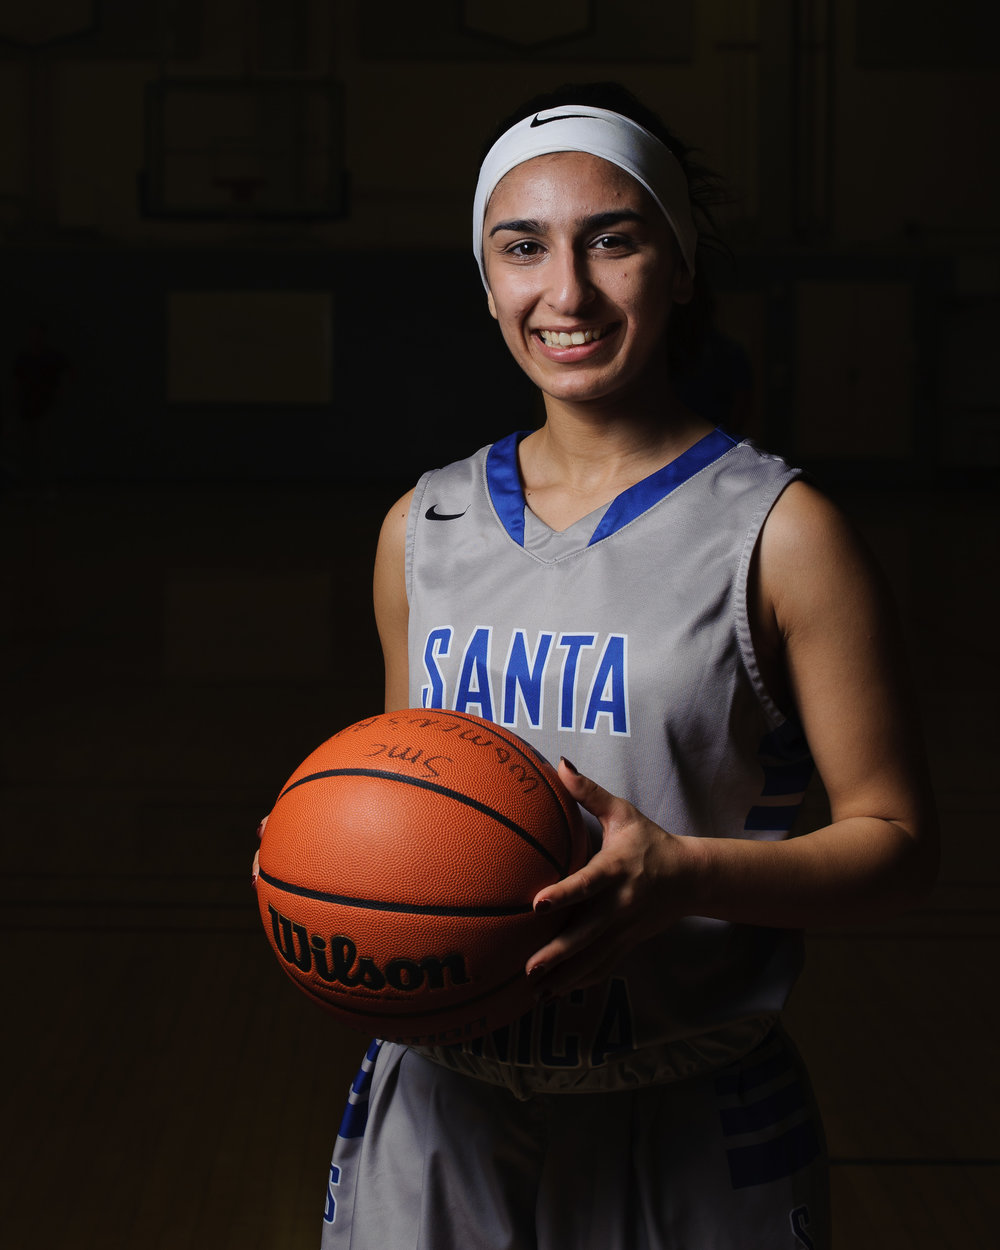 Jessica Melamed (2), a sophomore guard on the Santa Monica College women's basketball team, poses for a portrait at the SMC Pavilion at the Santa Monica college main campus. Santa Monica, Calif., Feb. 17, 2018. (Photo by: Justin Han/Corsair Staff)